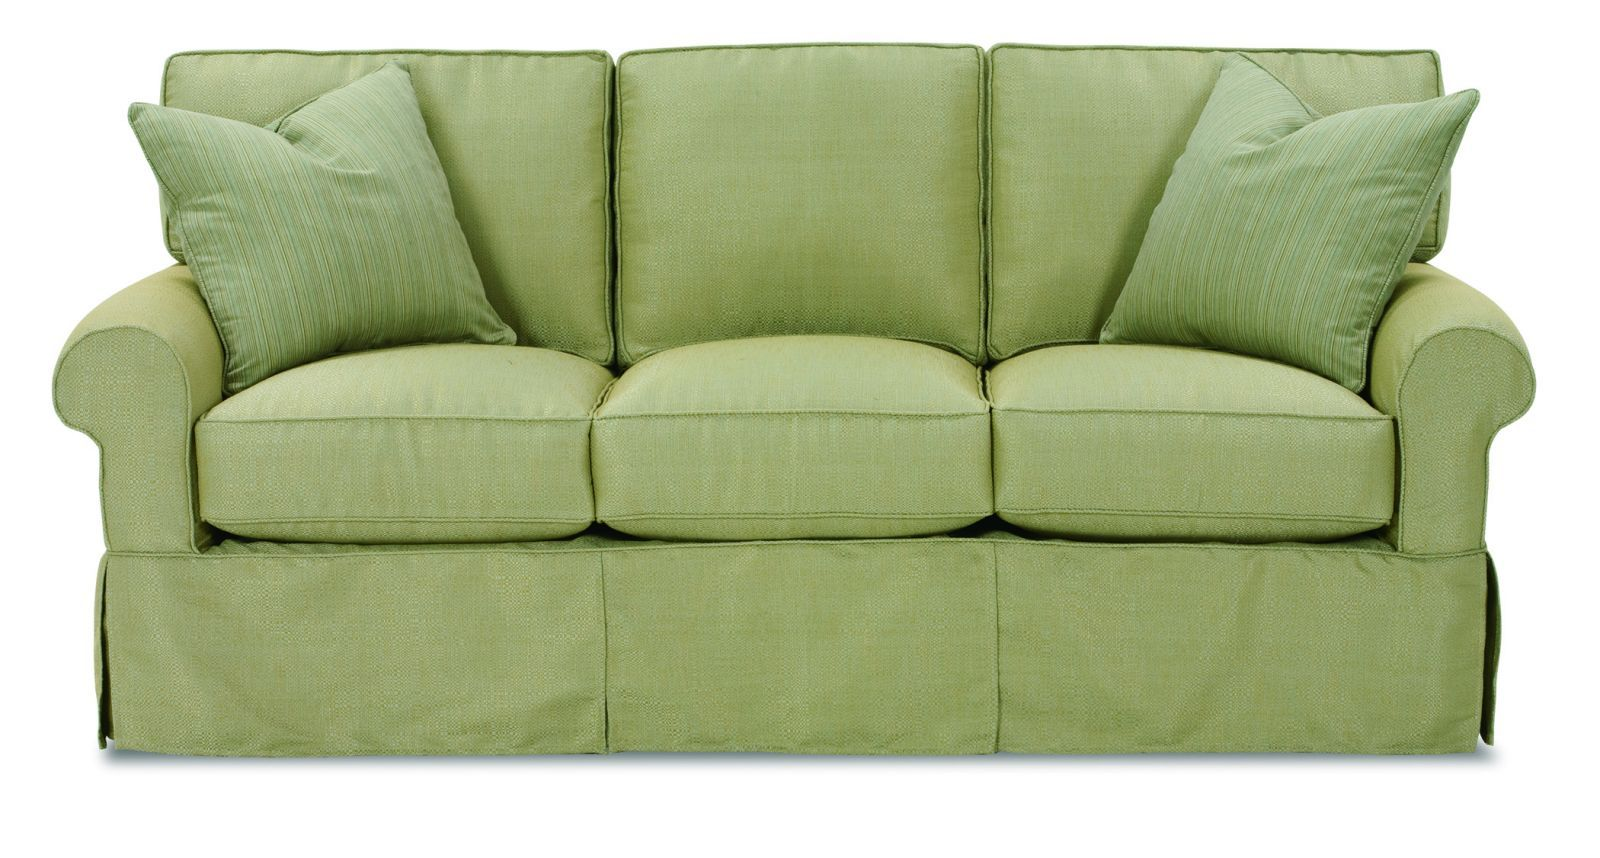 Sofas Score Old Wooden Sofa Set In Bangalore Rowe Nantucket Woohoo Of The Day I Just Bought